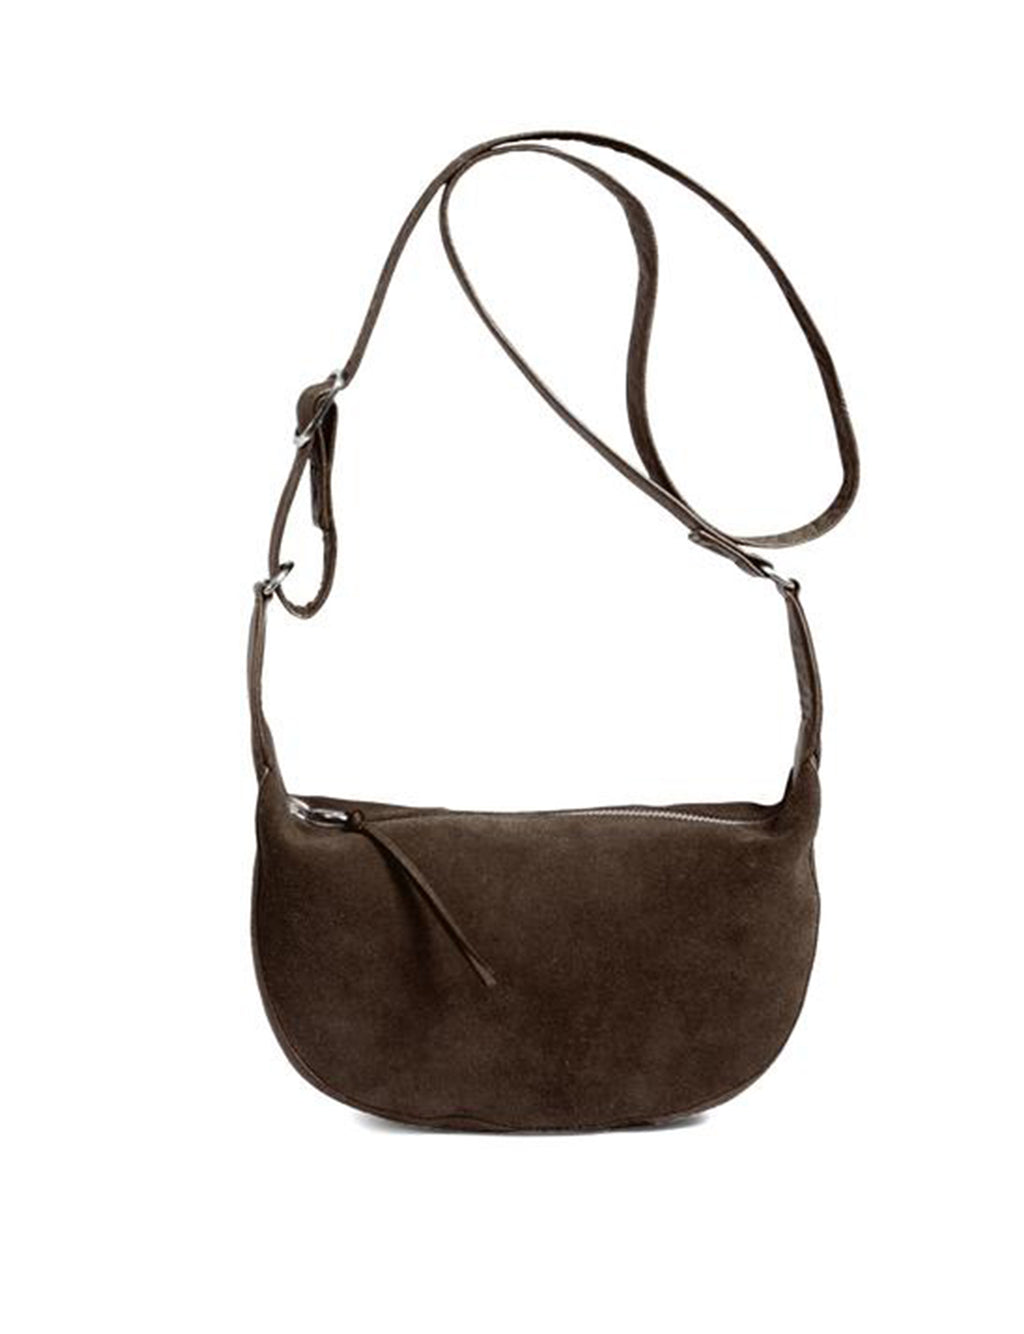 Kiana Crossbody in Brown